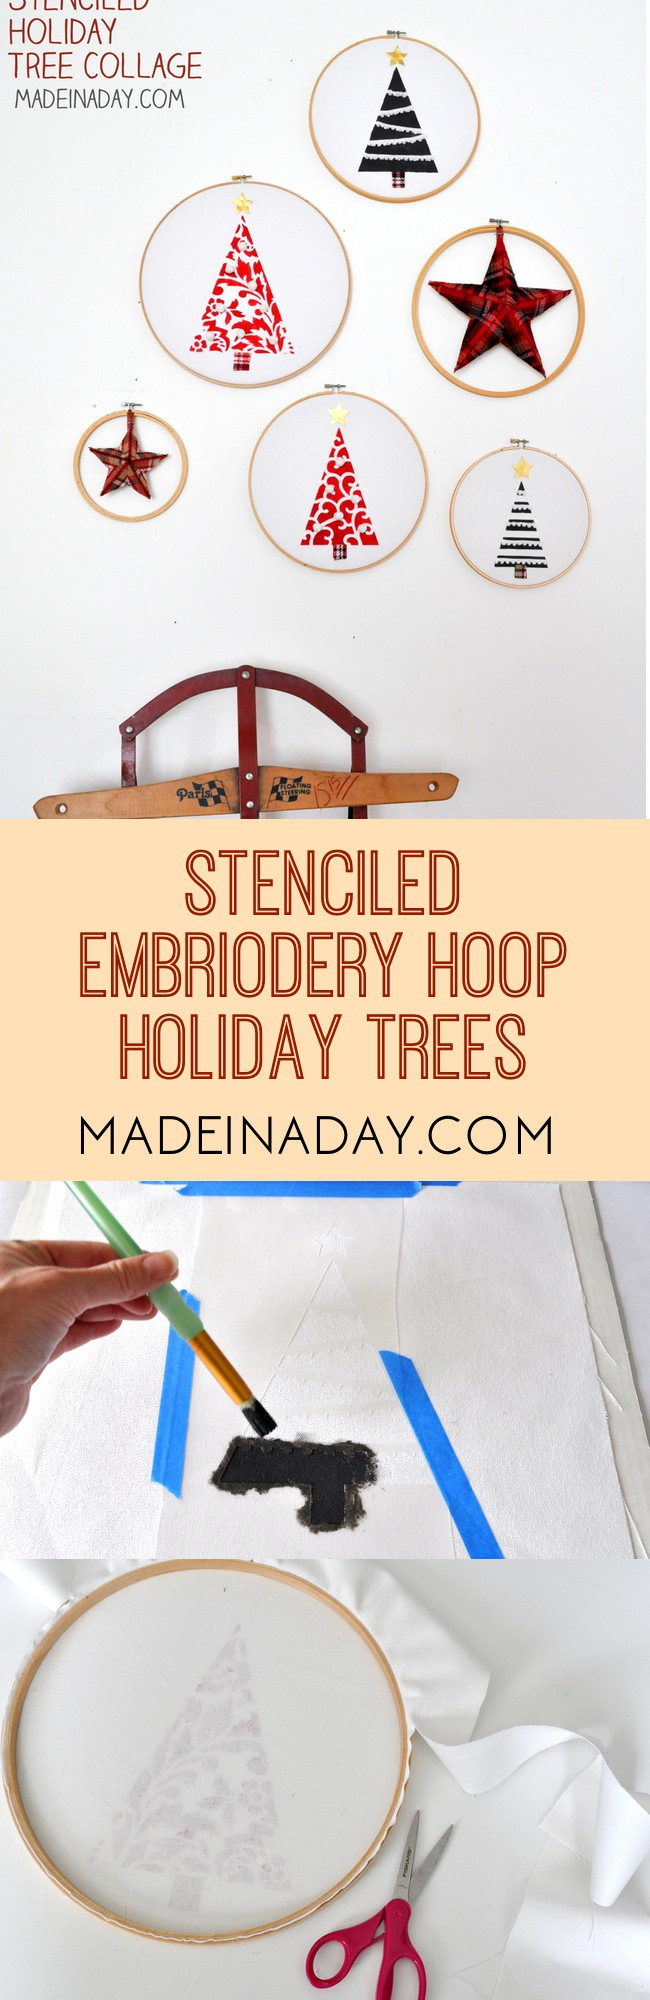 Stenciled Holiday Tree Collage, Stenciled Holiday Trees on canvas, embroidery hoop tree, holiday trees embroidery hoop collage, painted trees embroidery hoop